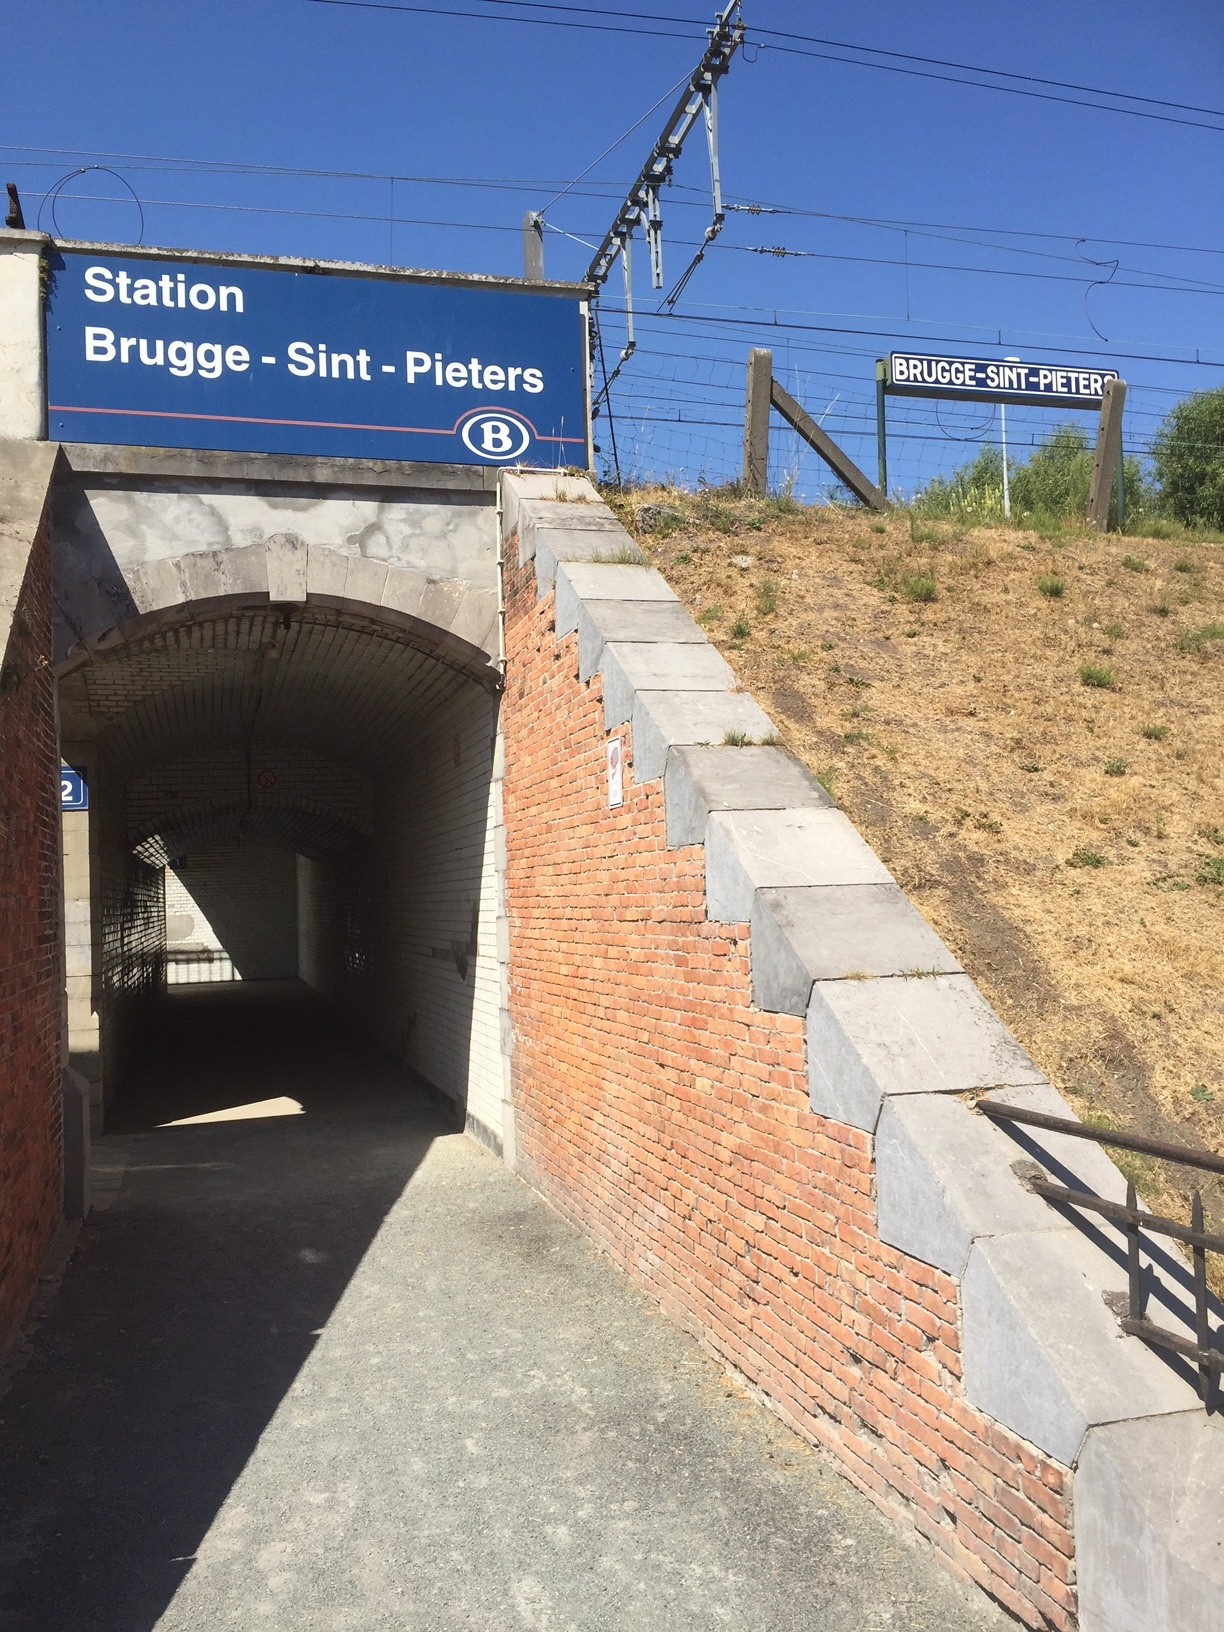 Station Brugge-Sint-Pieters signs